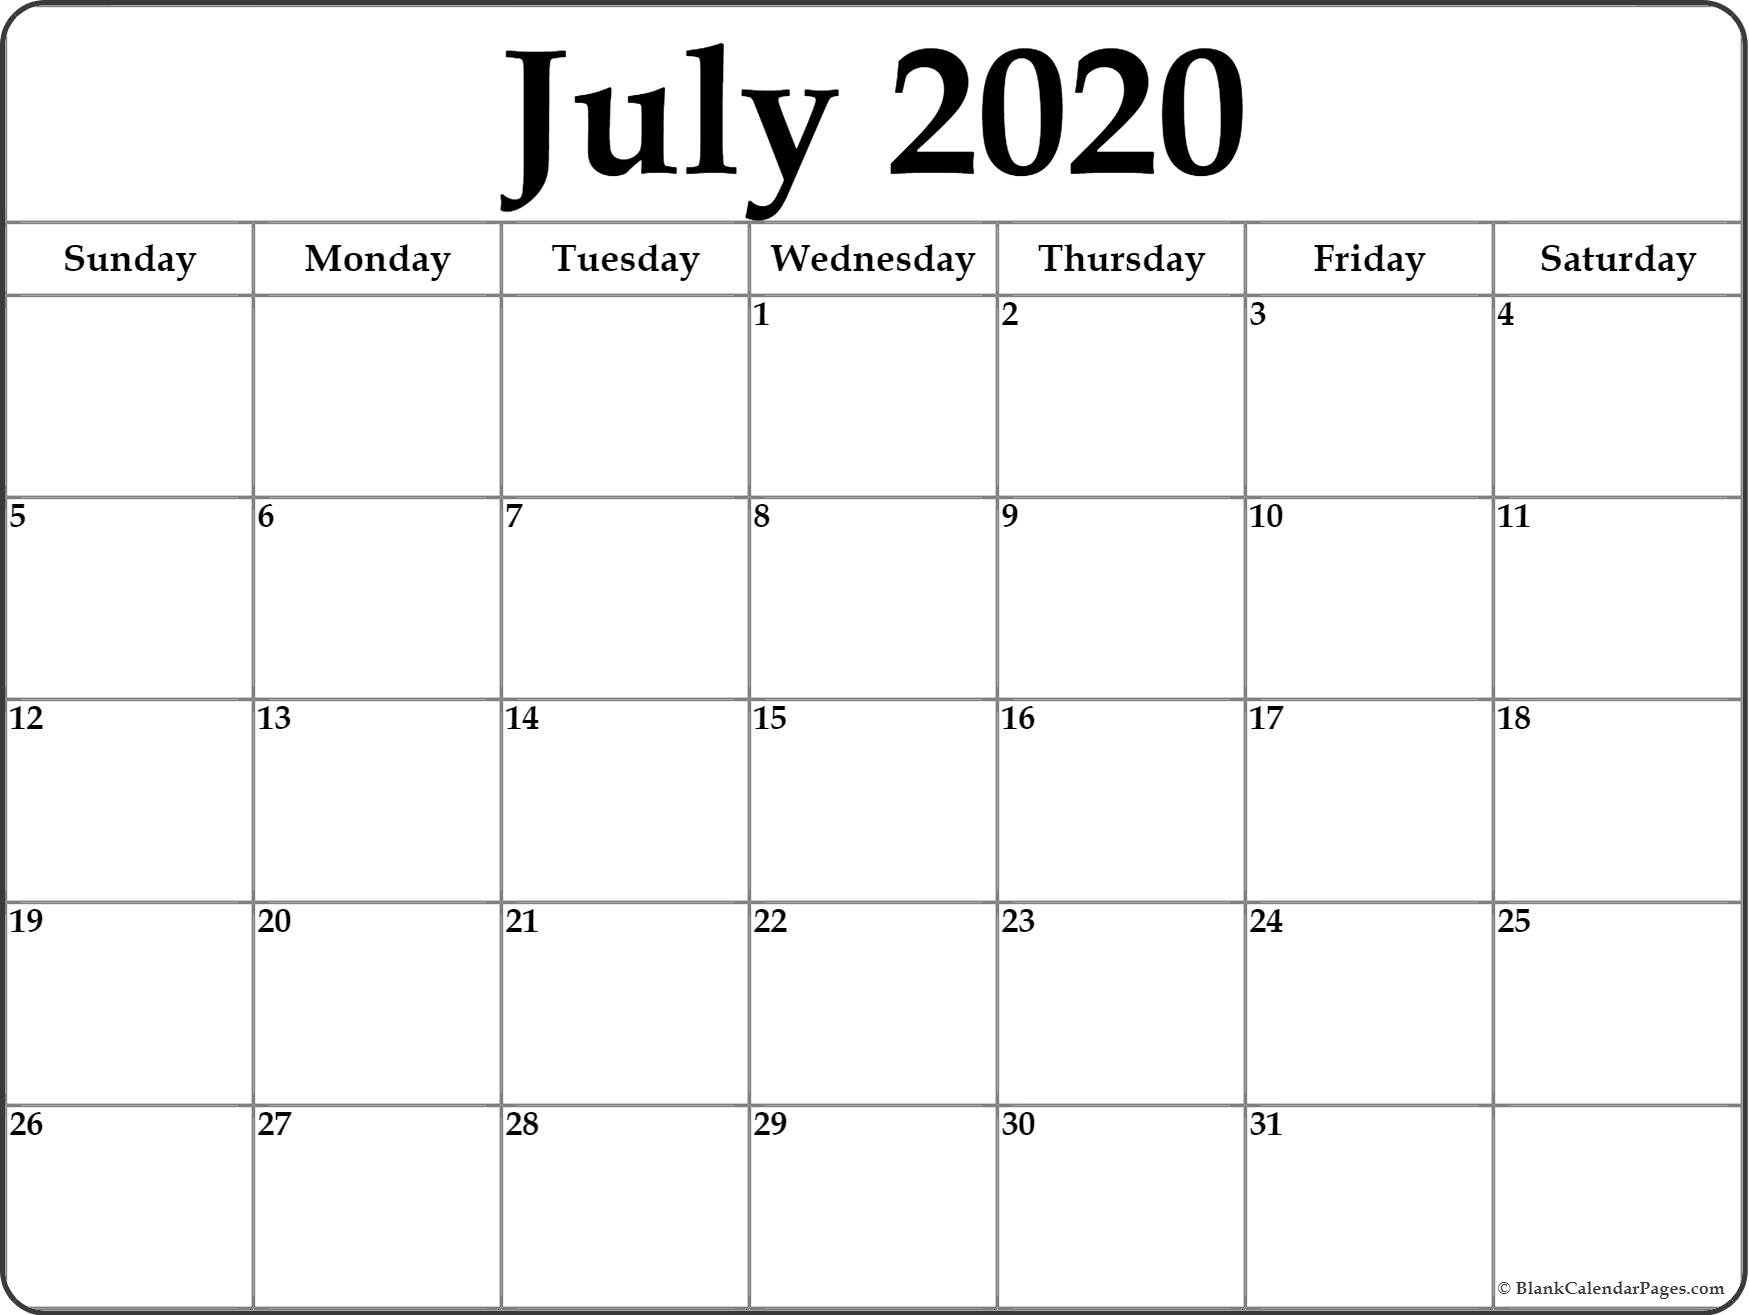 July 2020 Calendar | Free Printable Monthly Calendars-Blank Calendar 2020 June July August